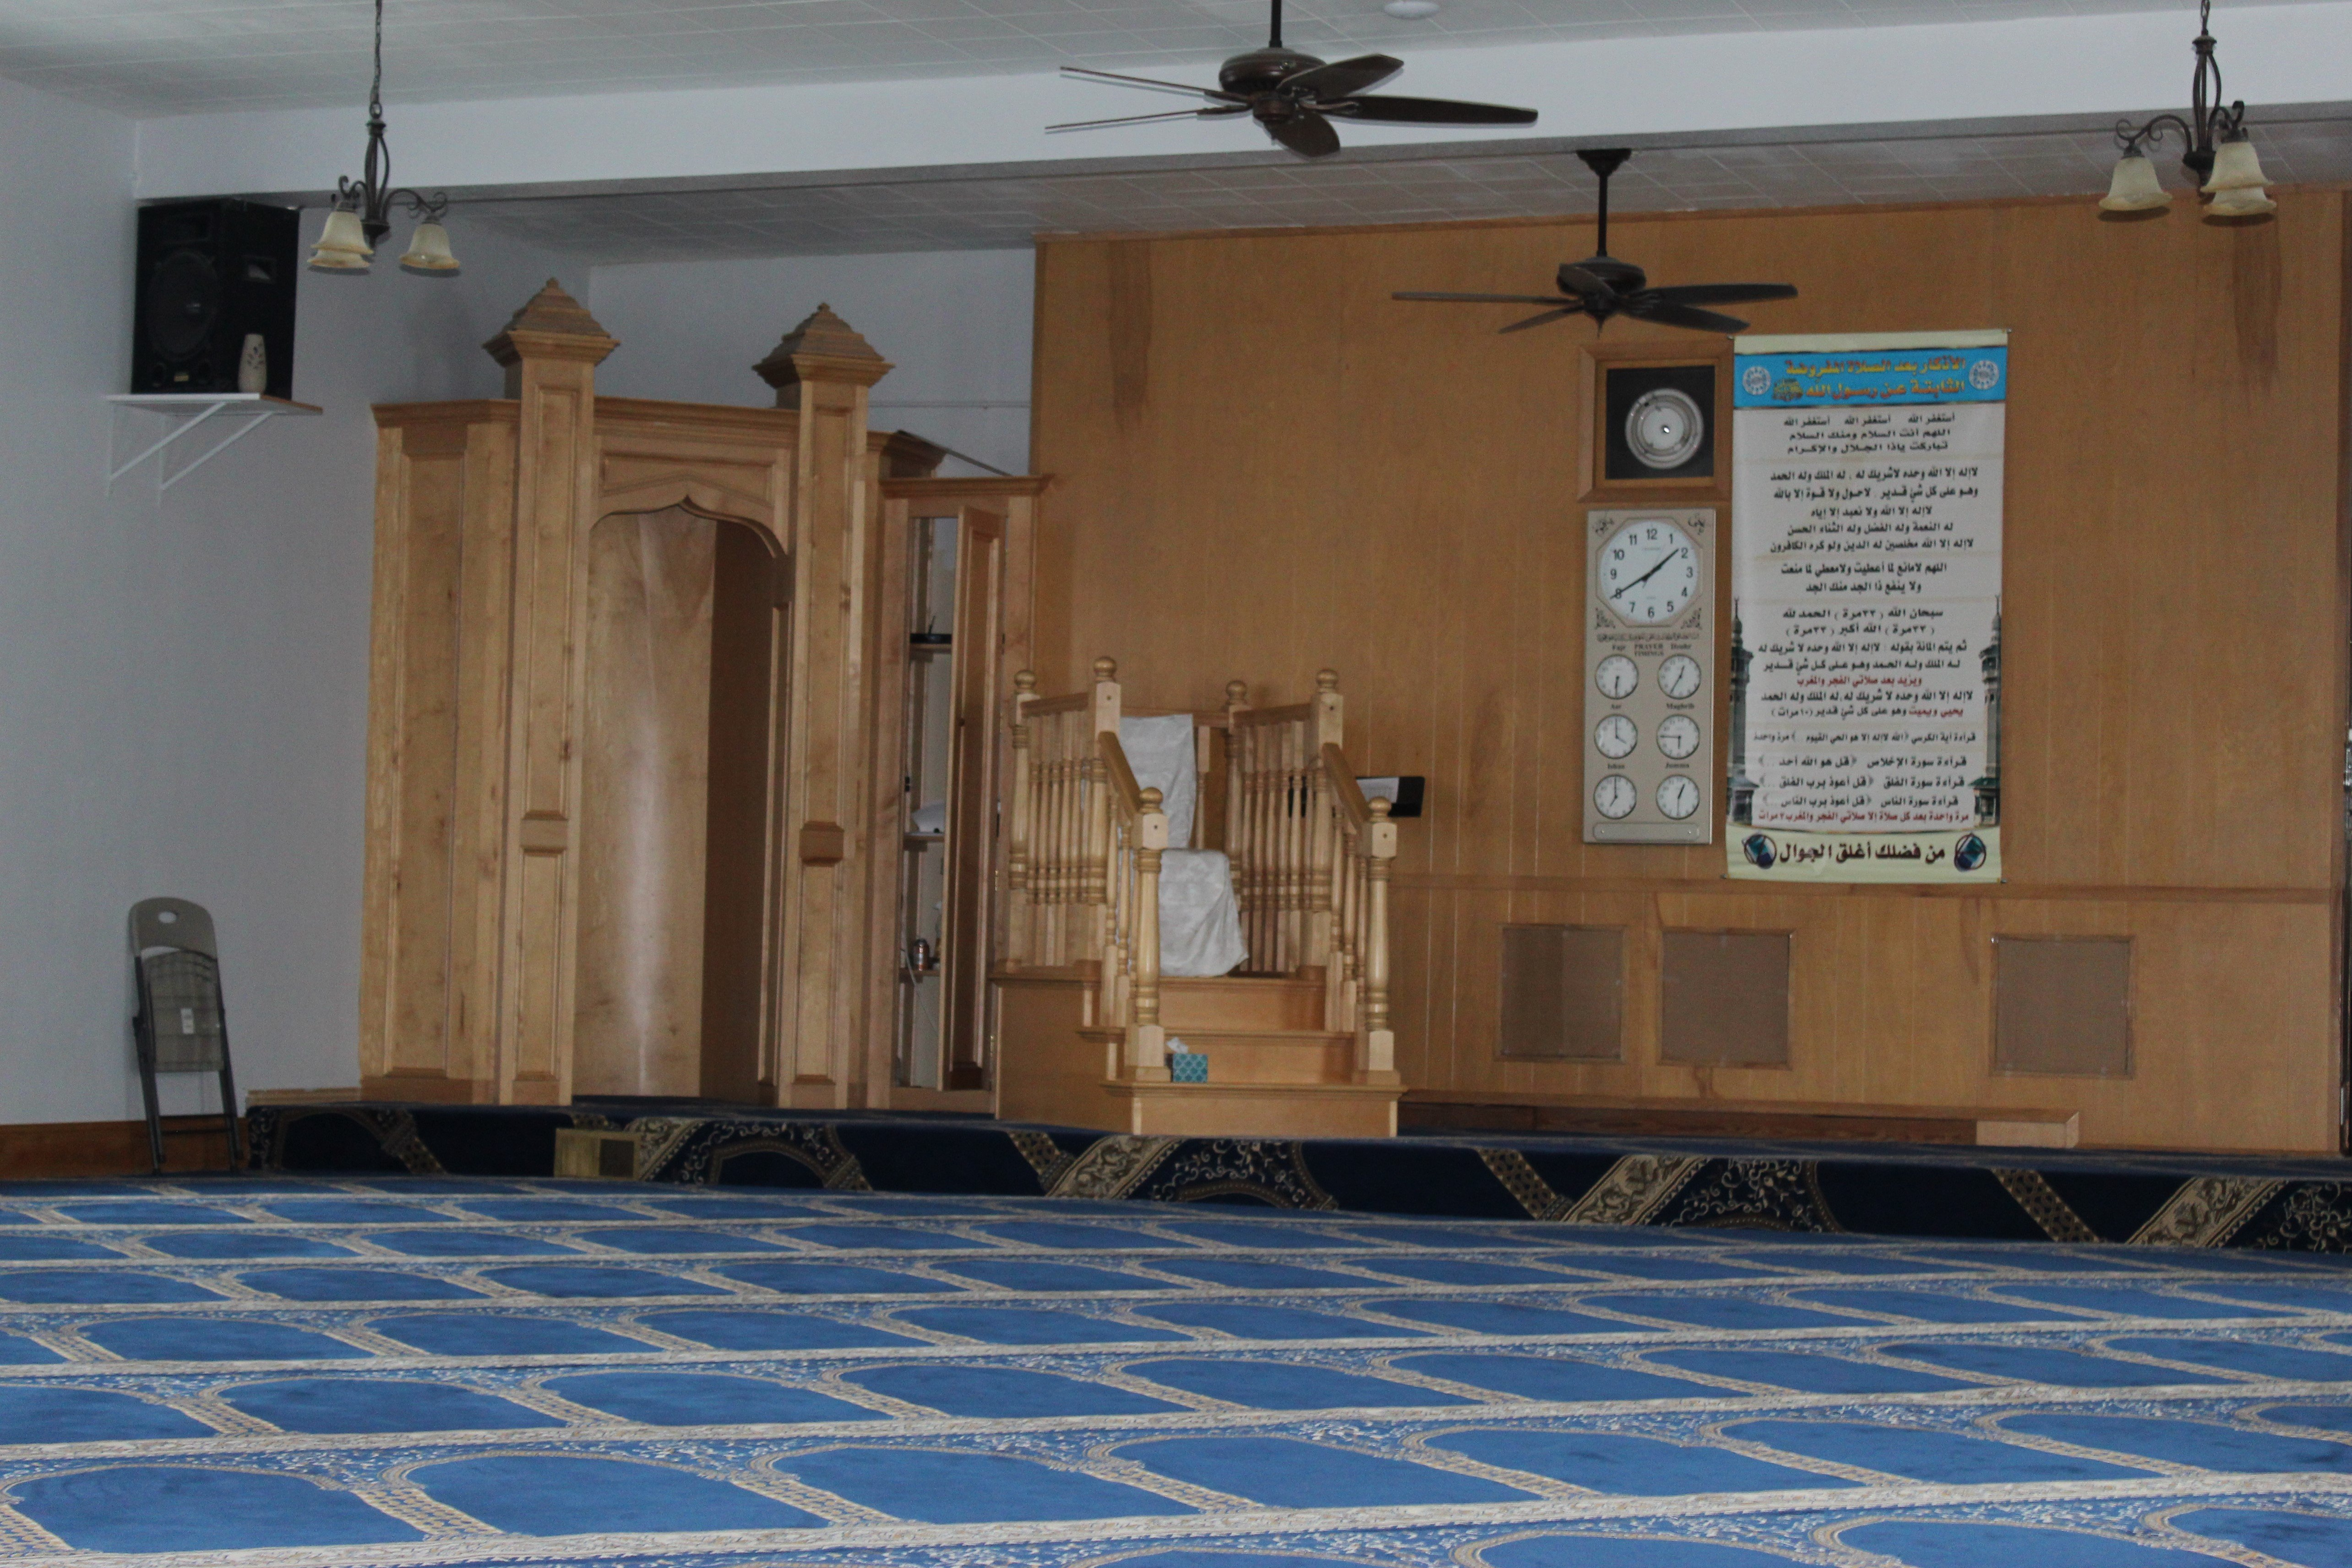 Image of Mosque in Des Moines, Iowa